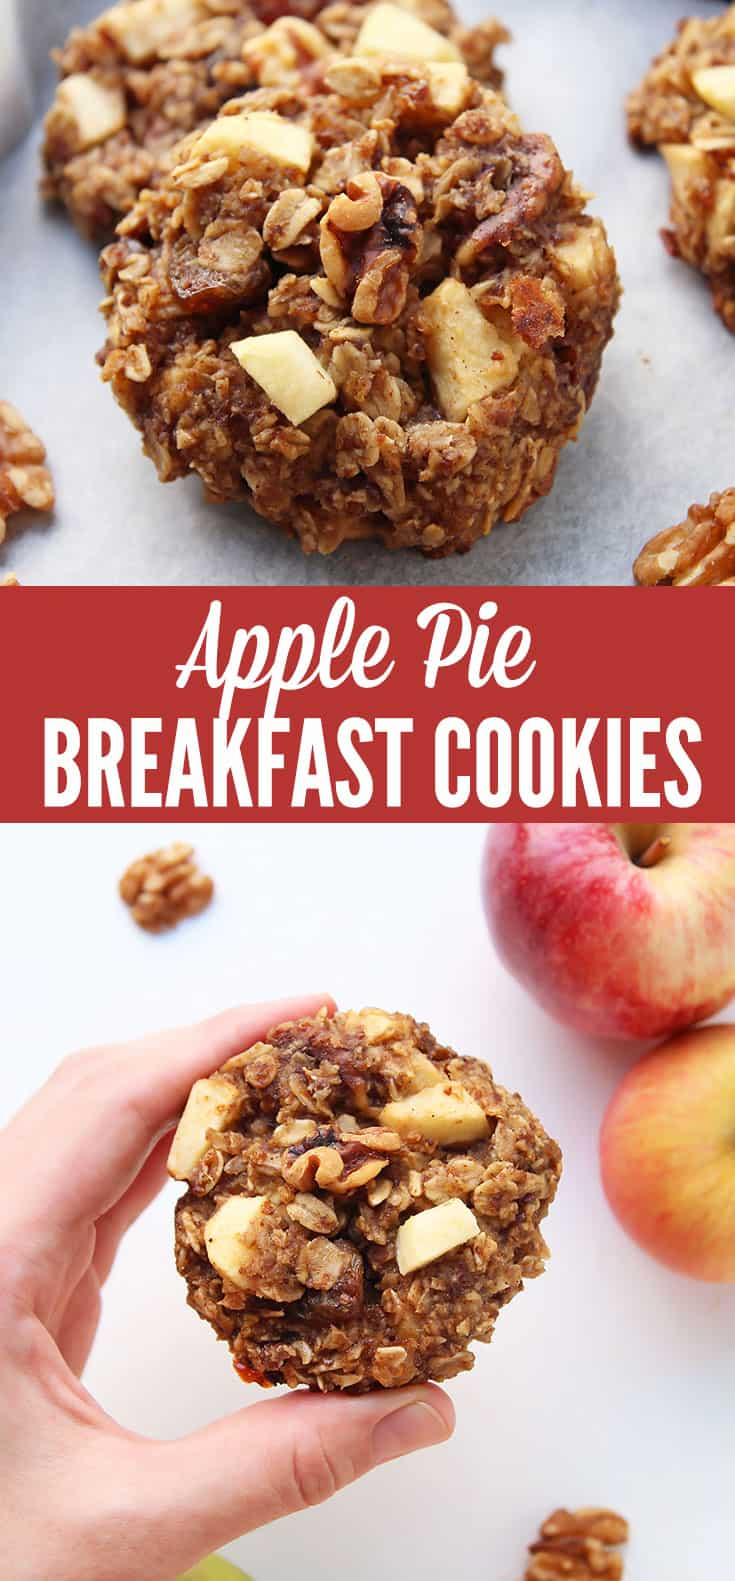 Oatmeal Breakfast Cookies with apple sauce, apple dices, walnuts, raisins and spices that make them taste like apple pie! This is one delicious, healthy way to eat dessert for breakfast. The cookies are gluten free, refined sugar free, with a vegan option.